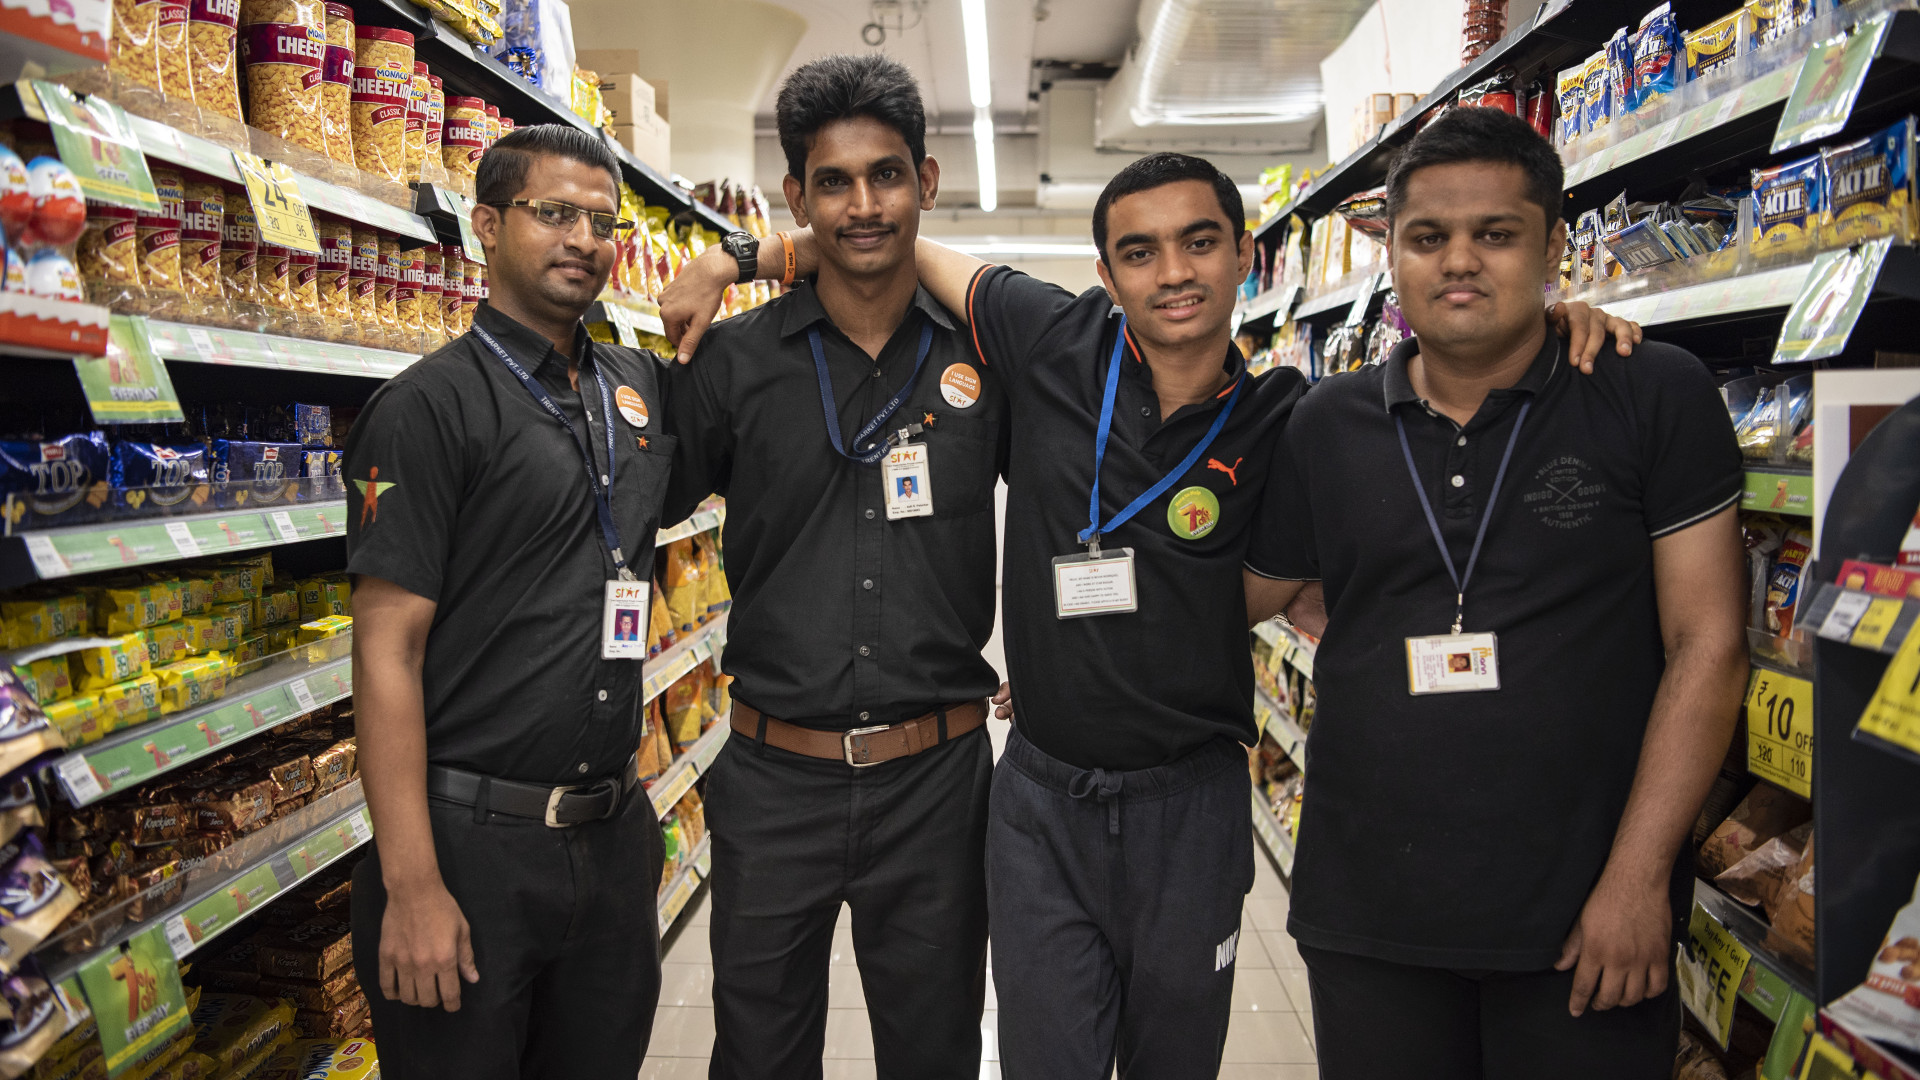 Diversity and inclusion at Trent Hypermarket